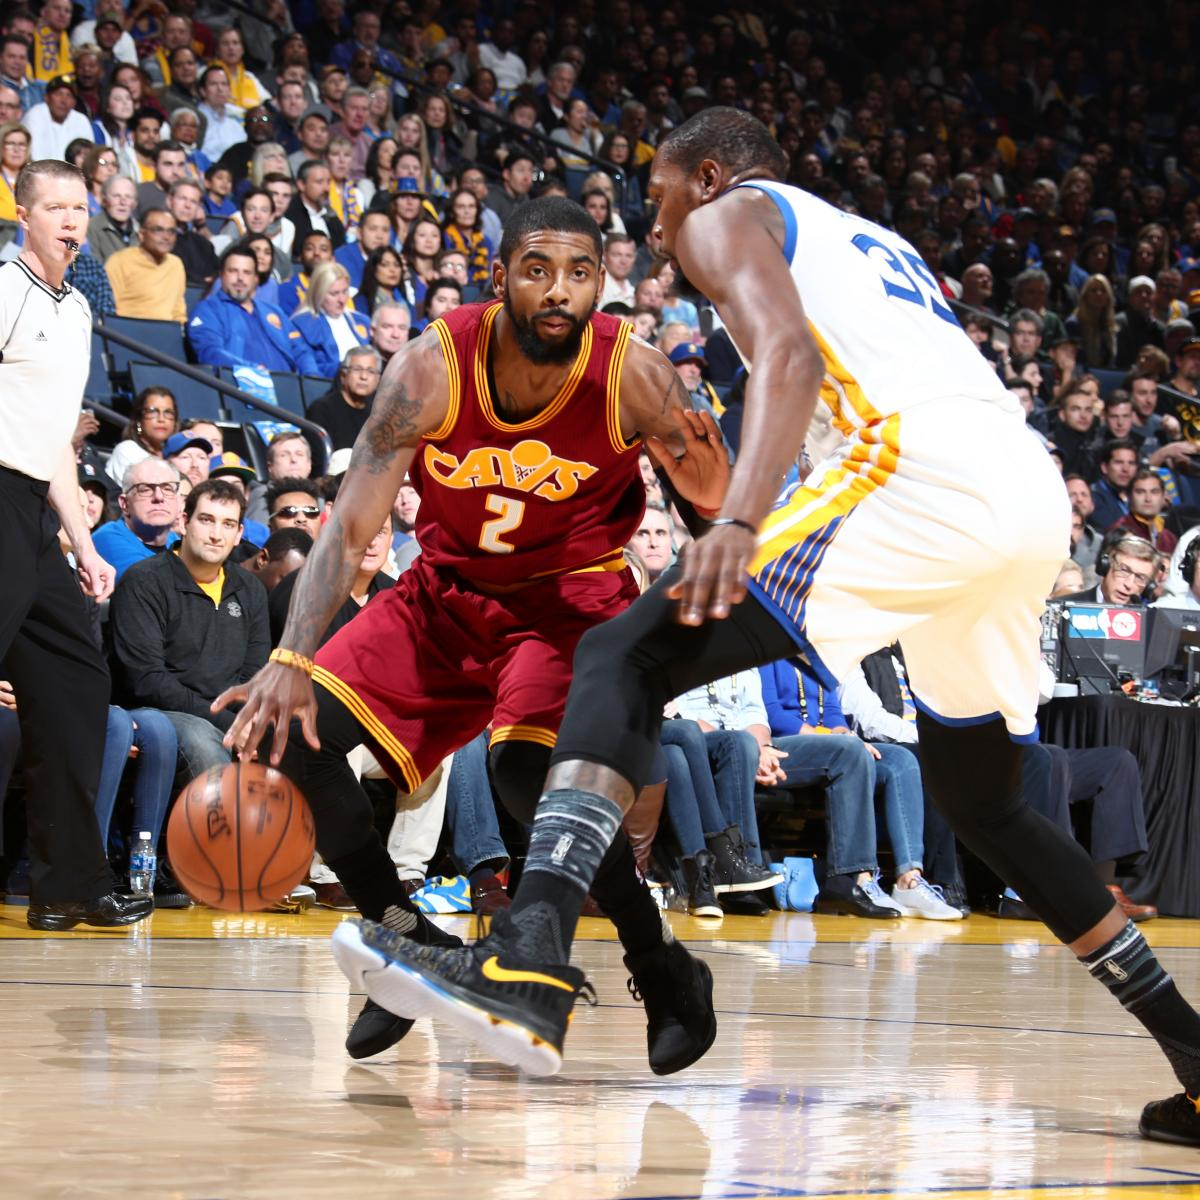 Cavs Vs. Warriors, Part 3: B/R's Complete Guide To The